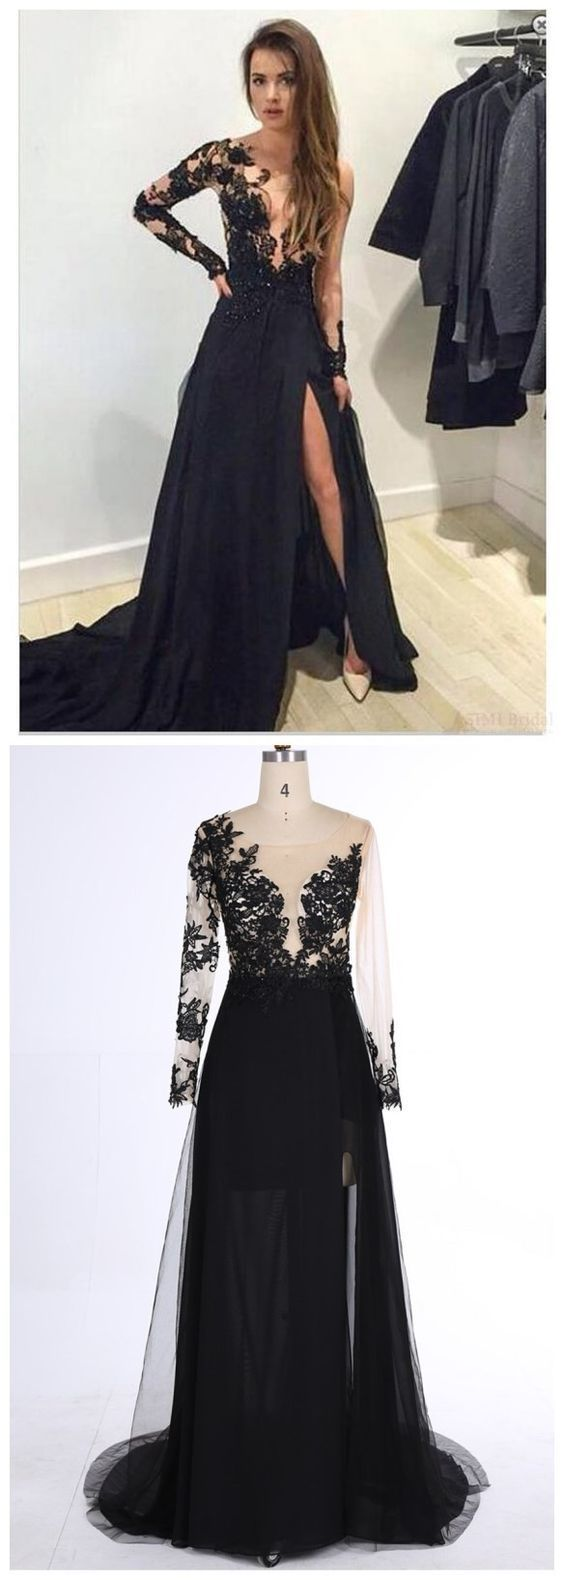 "evening gown with sleeves chloe) ""my dress for prom.. probably won't get asked though!"":"